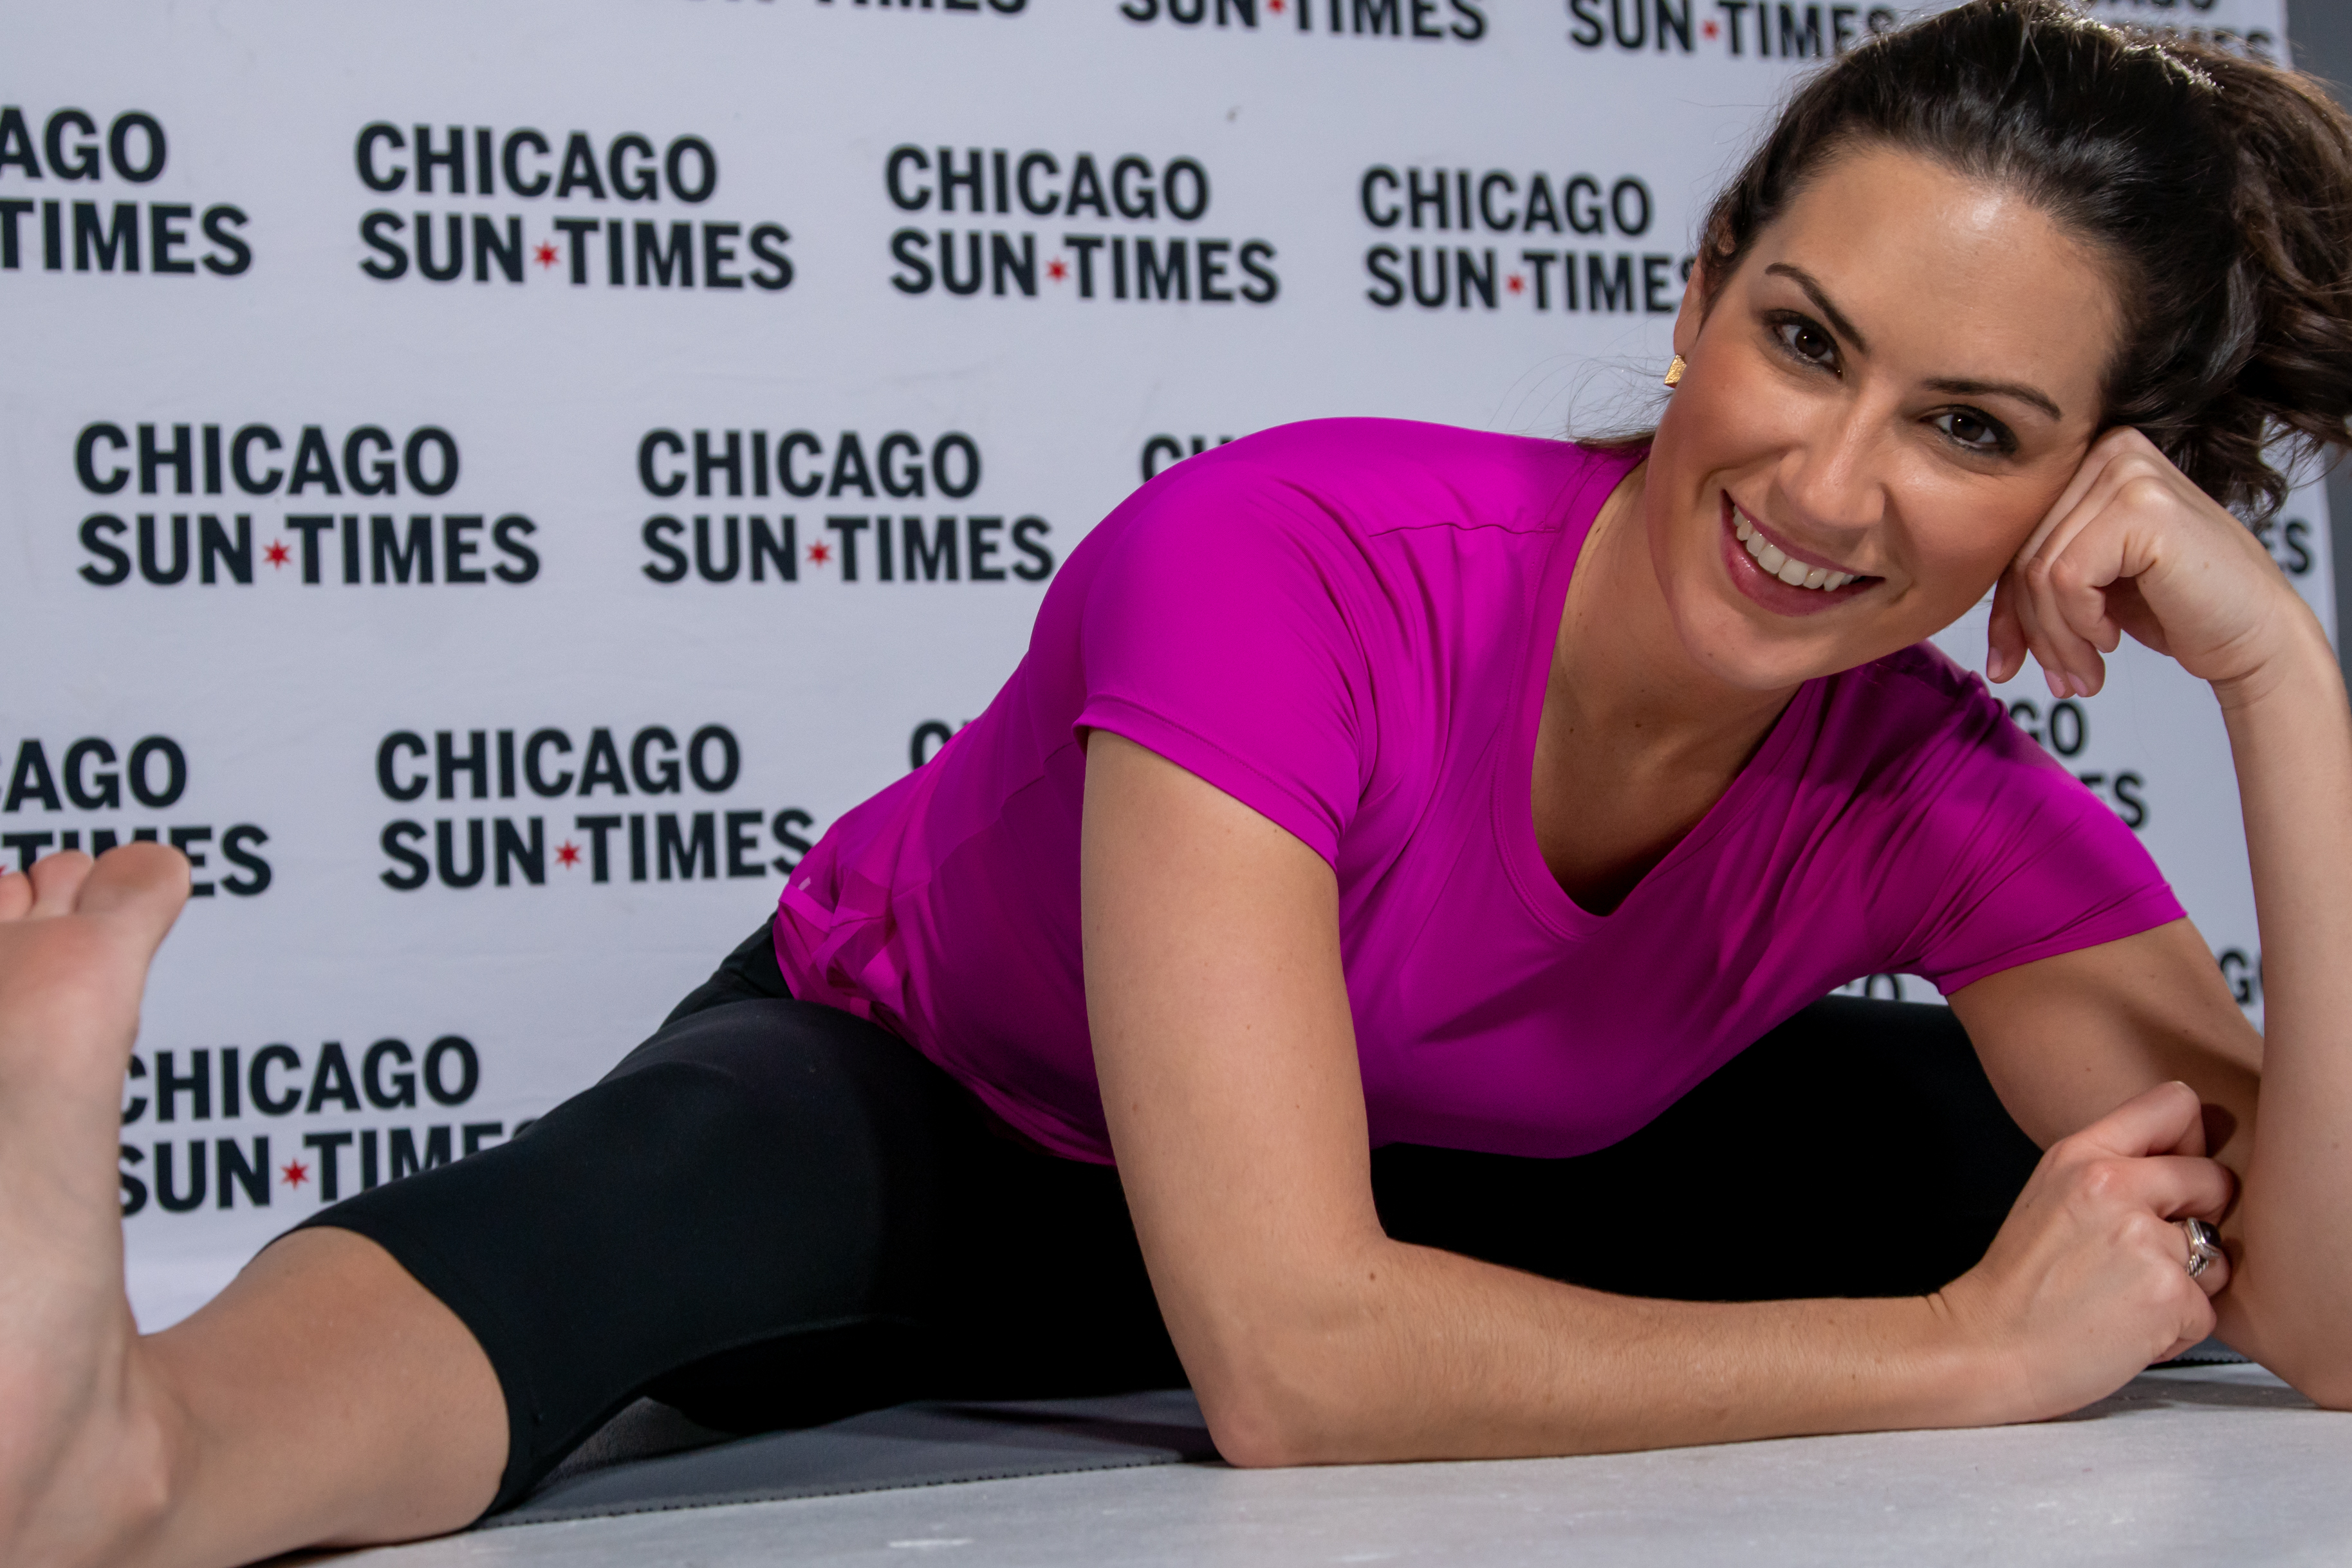 Traditional goal-setting often neglects understanding the key reason WHY you want to reach a specific end result, says health and fitness expert Stephanie Mansour.